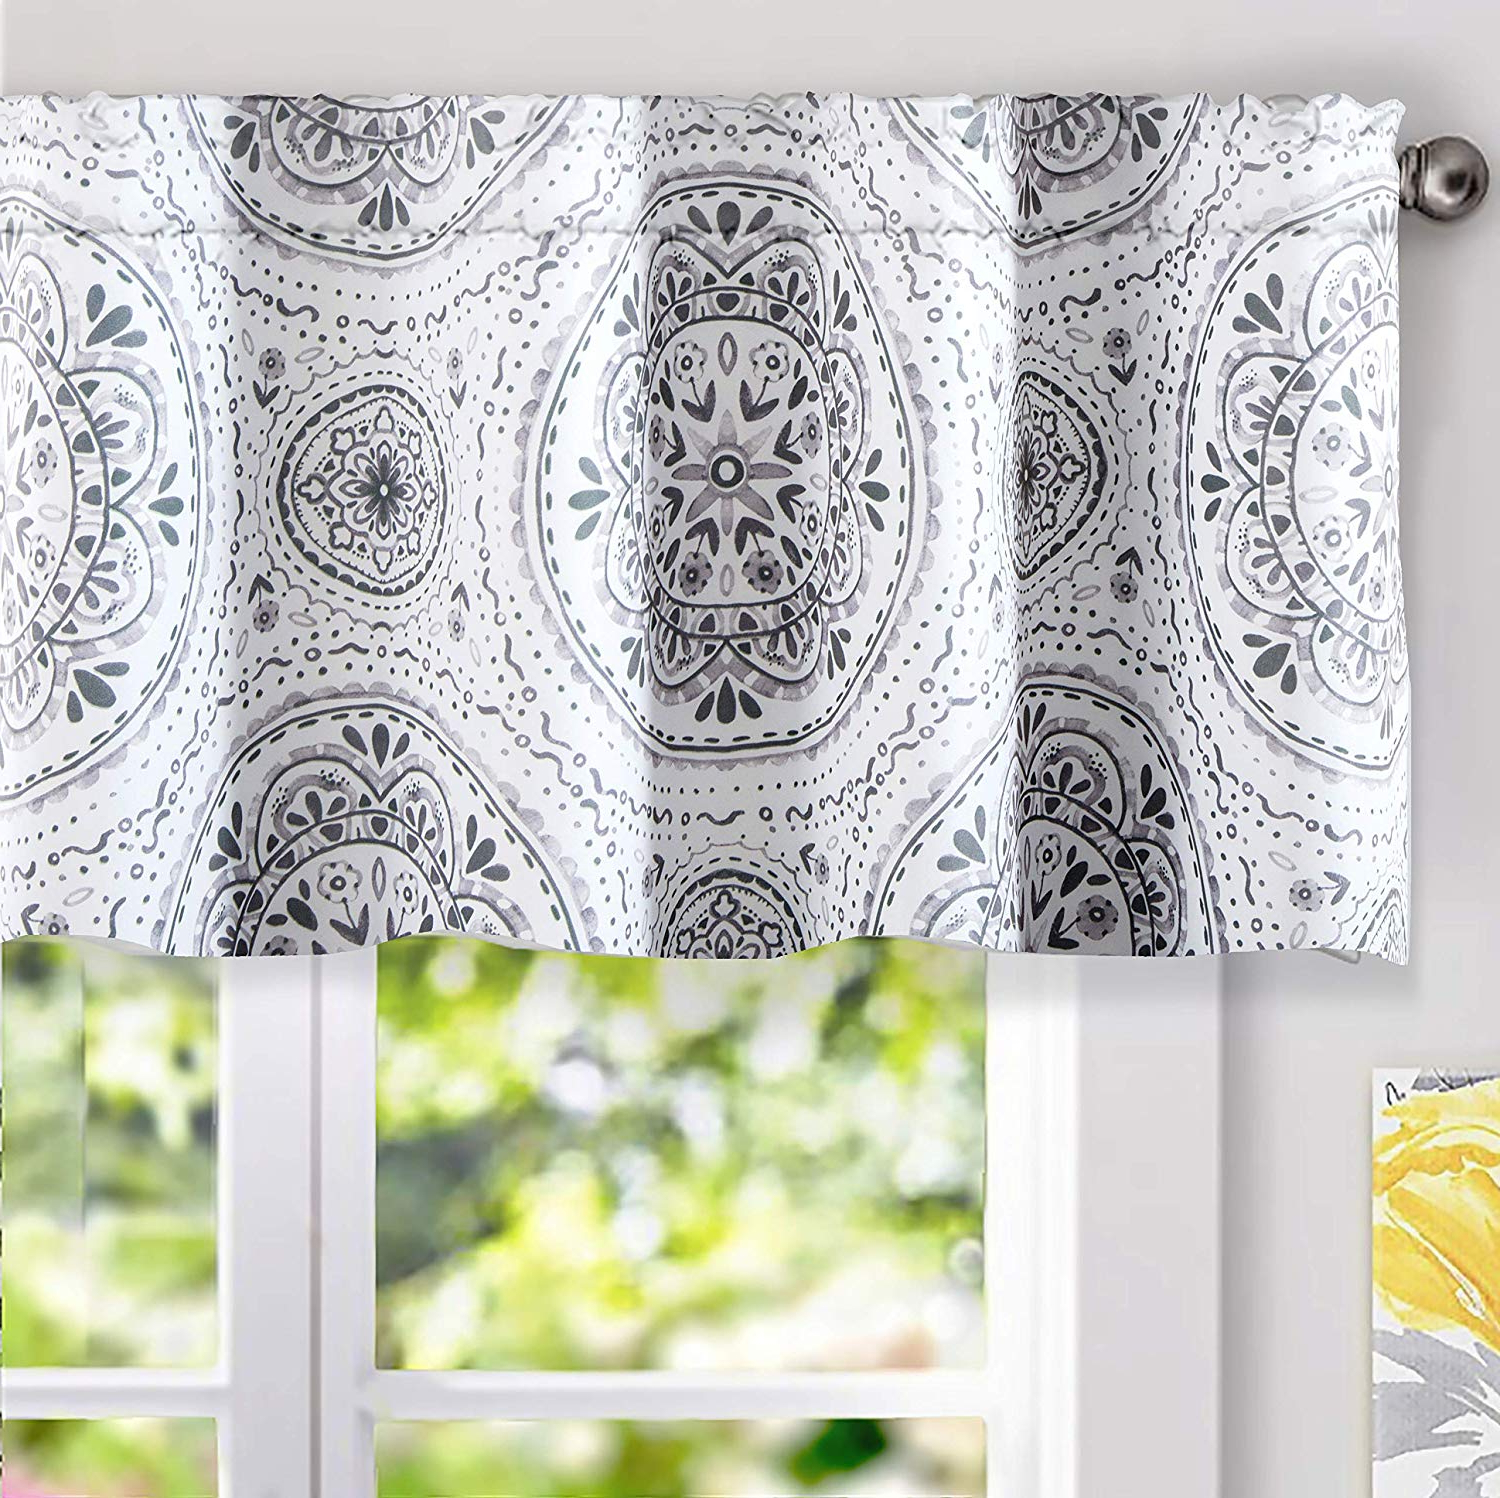 Famous Medallion Window Curtain Valances Throughout Driftaway Lucia Medallion Pattern Lined Thermal Insulated Energy Saving Window Curtain Valance For Living Room 2 Layers Rod Pocket 5218 Inch Plus (View 3 of 20)